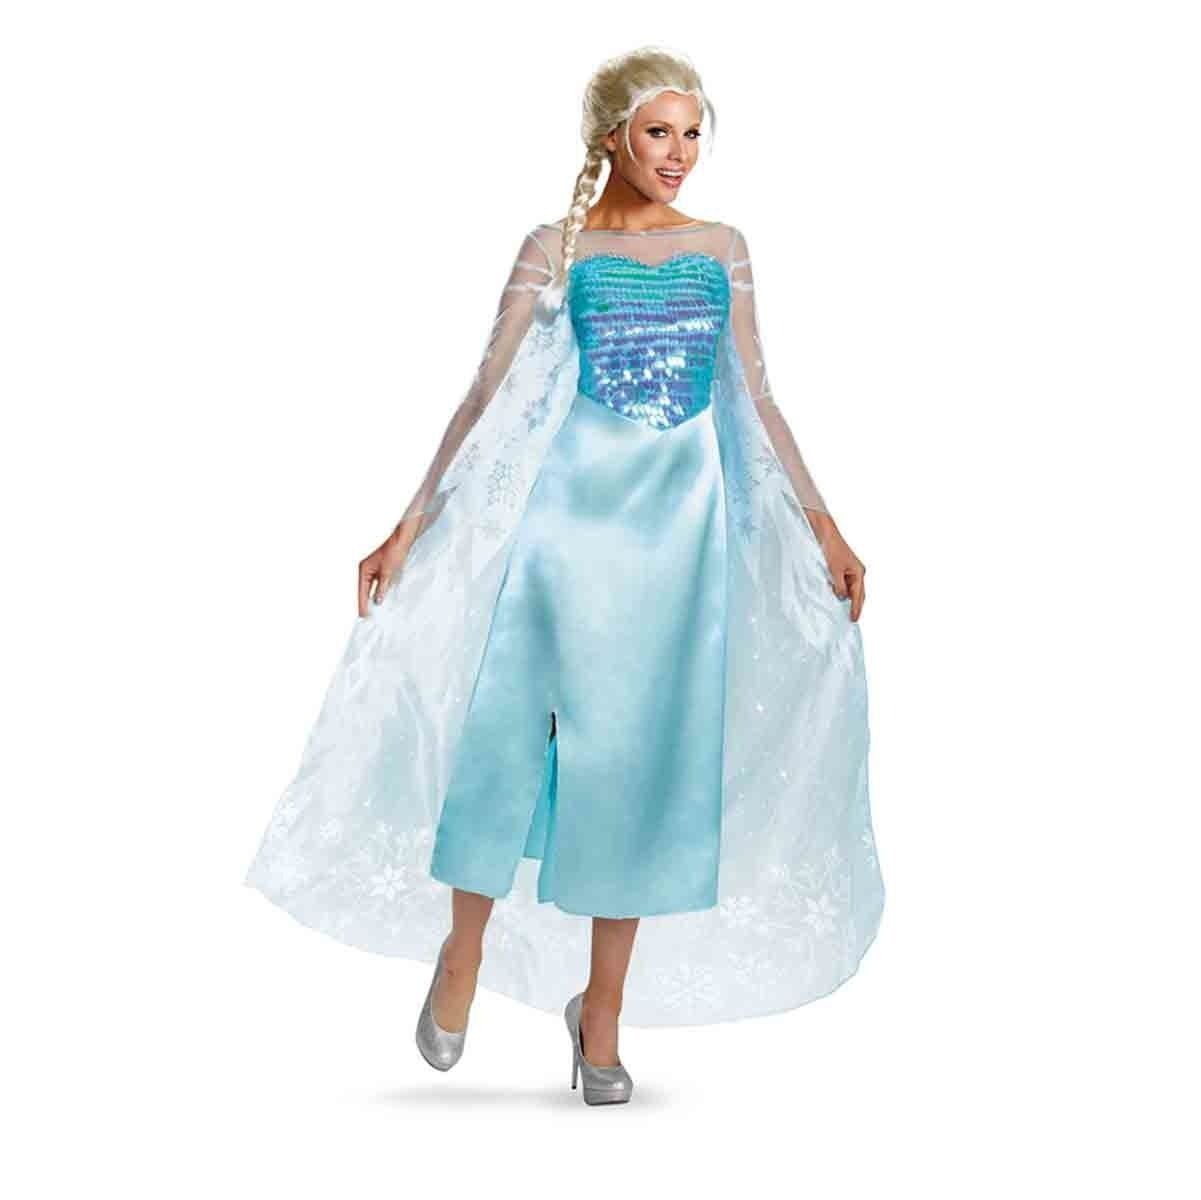 Disney Frozen Elsa Snow Queen Deluxe Blue Glitter Dress Adult Disguise 82832